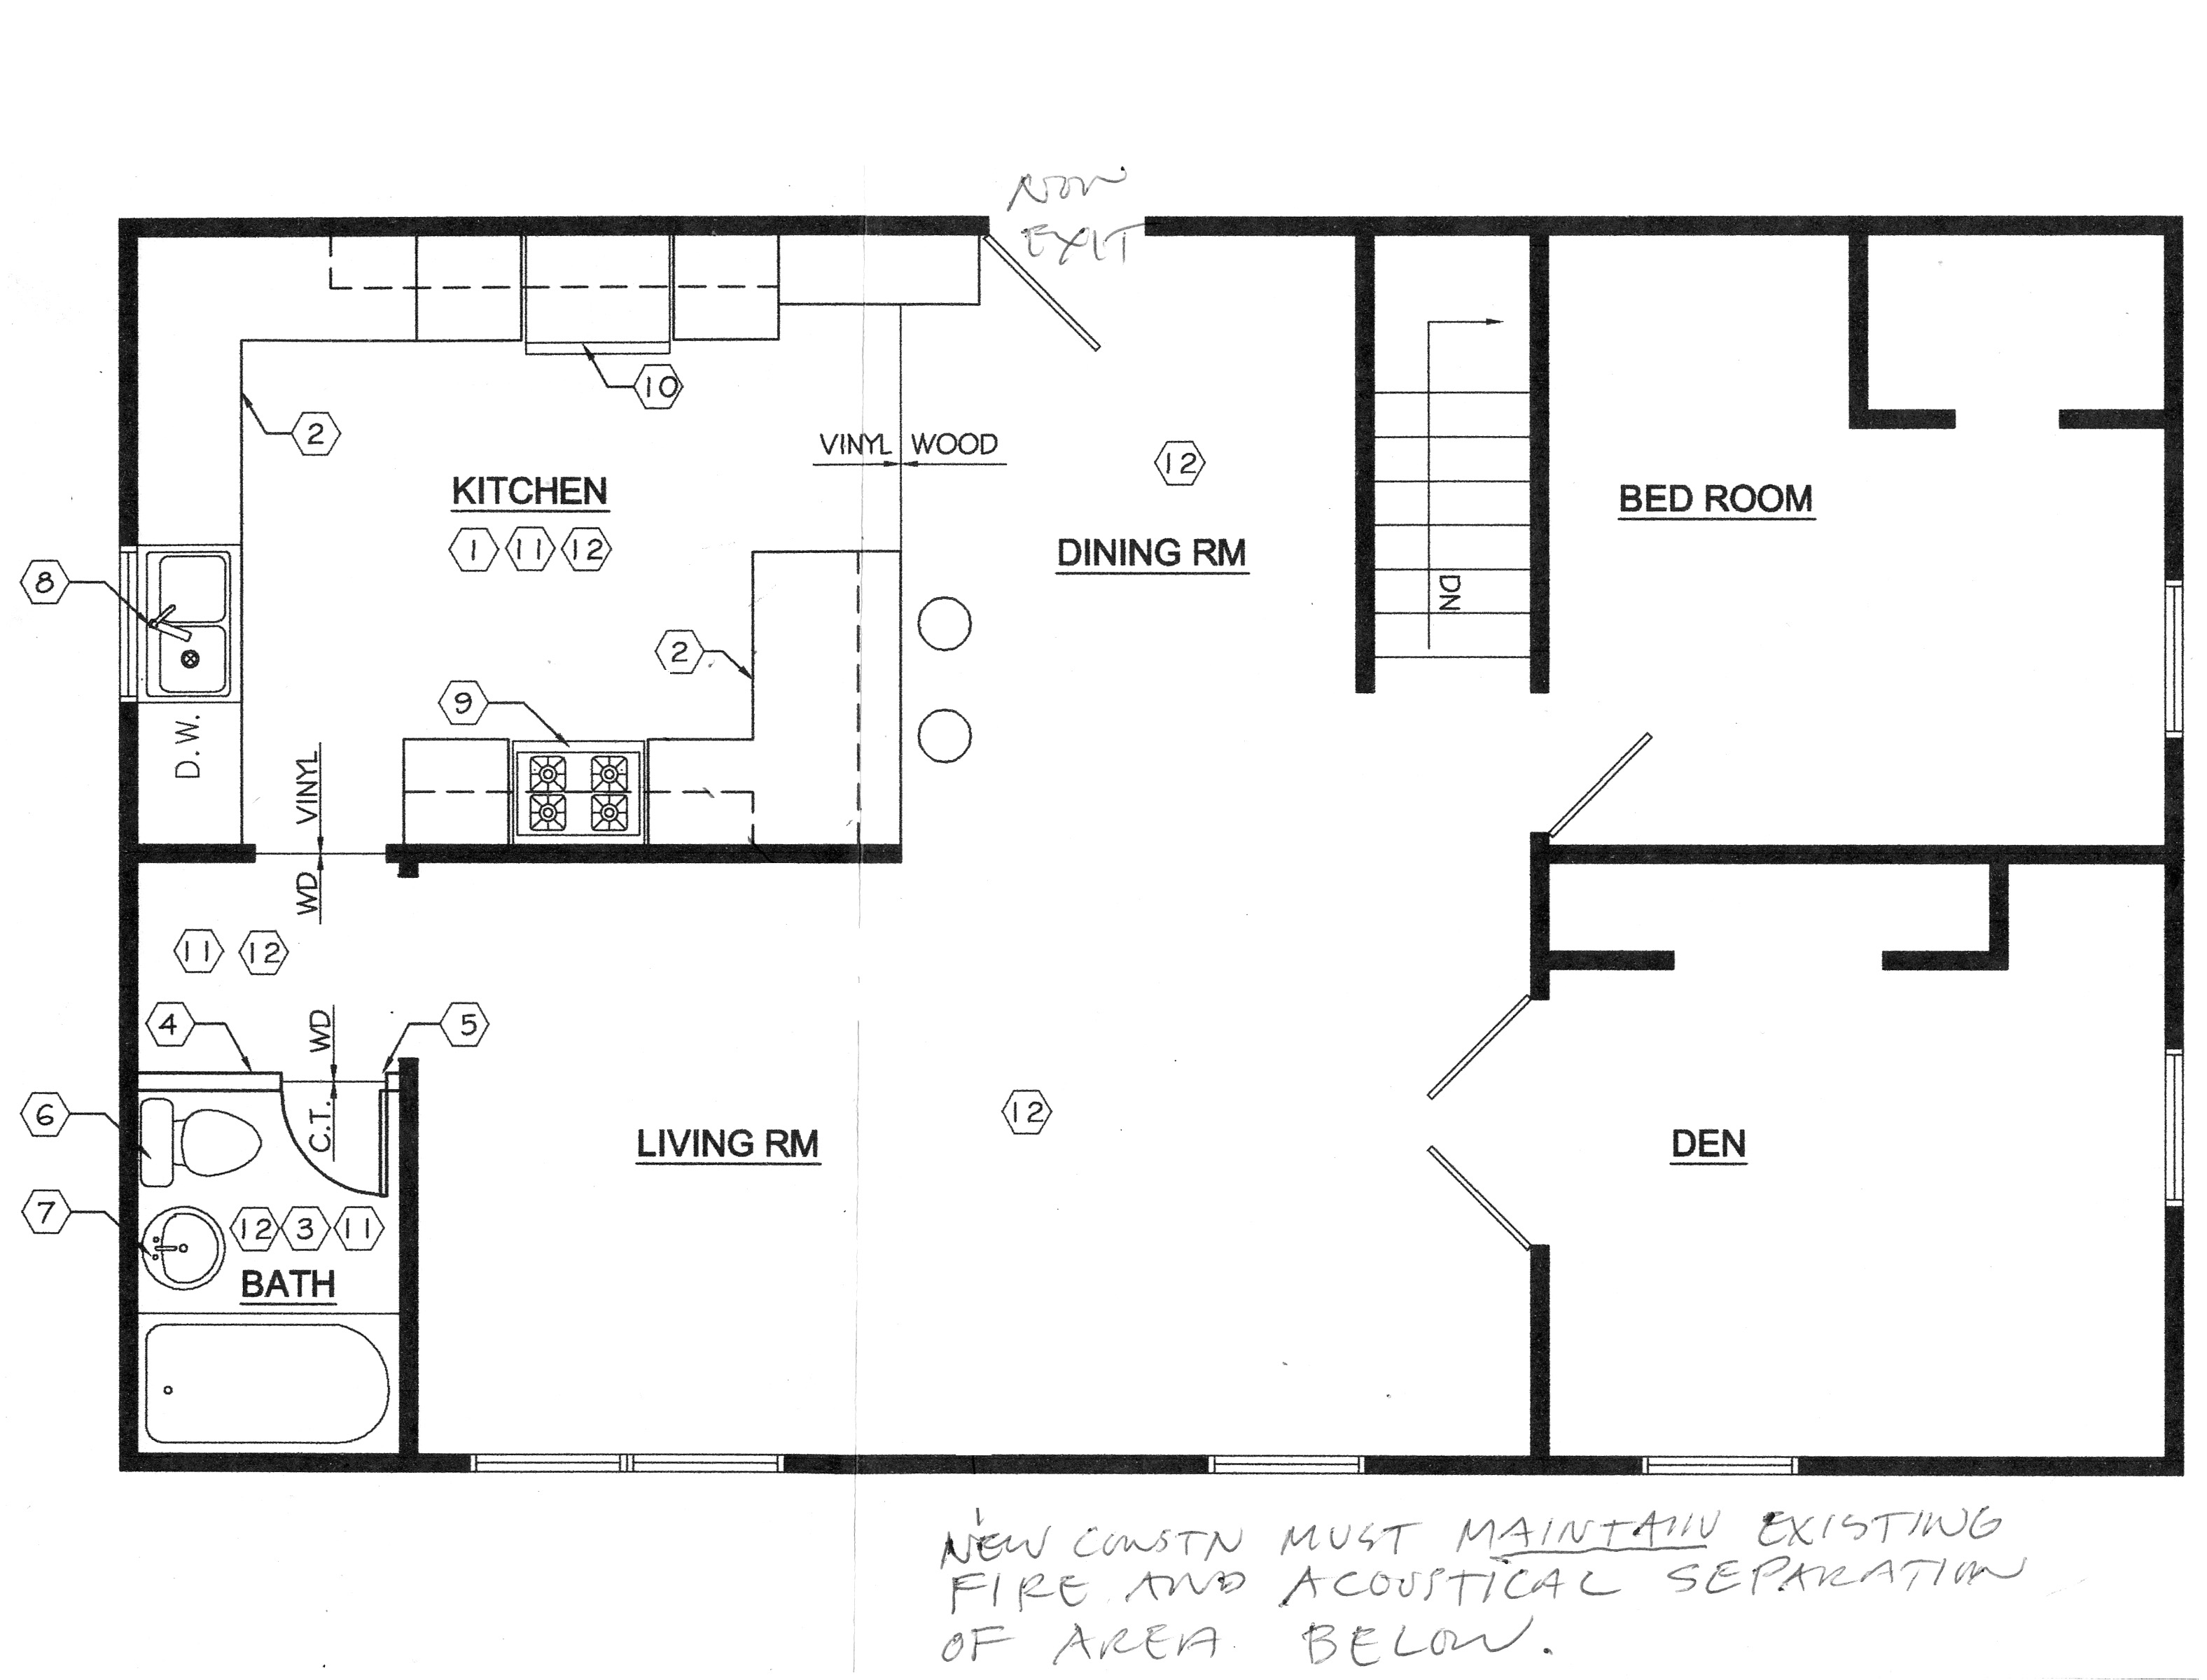 Floor plans this odd house Blueprint homes floor plans